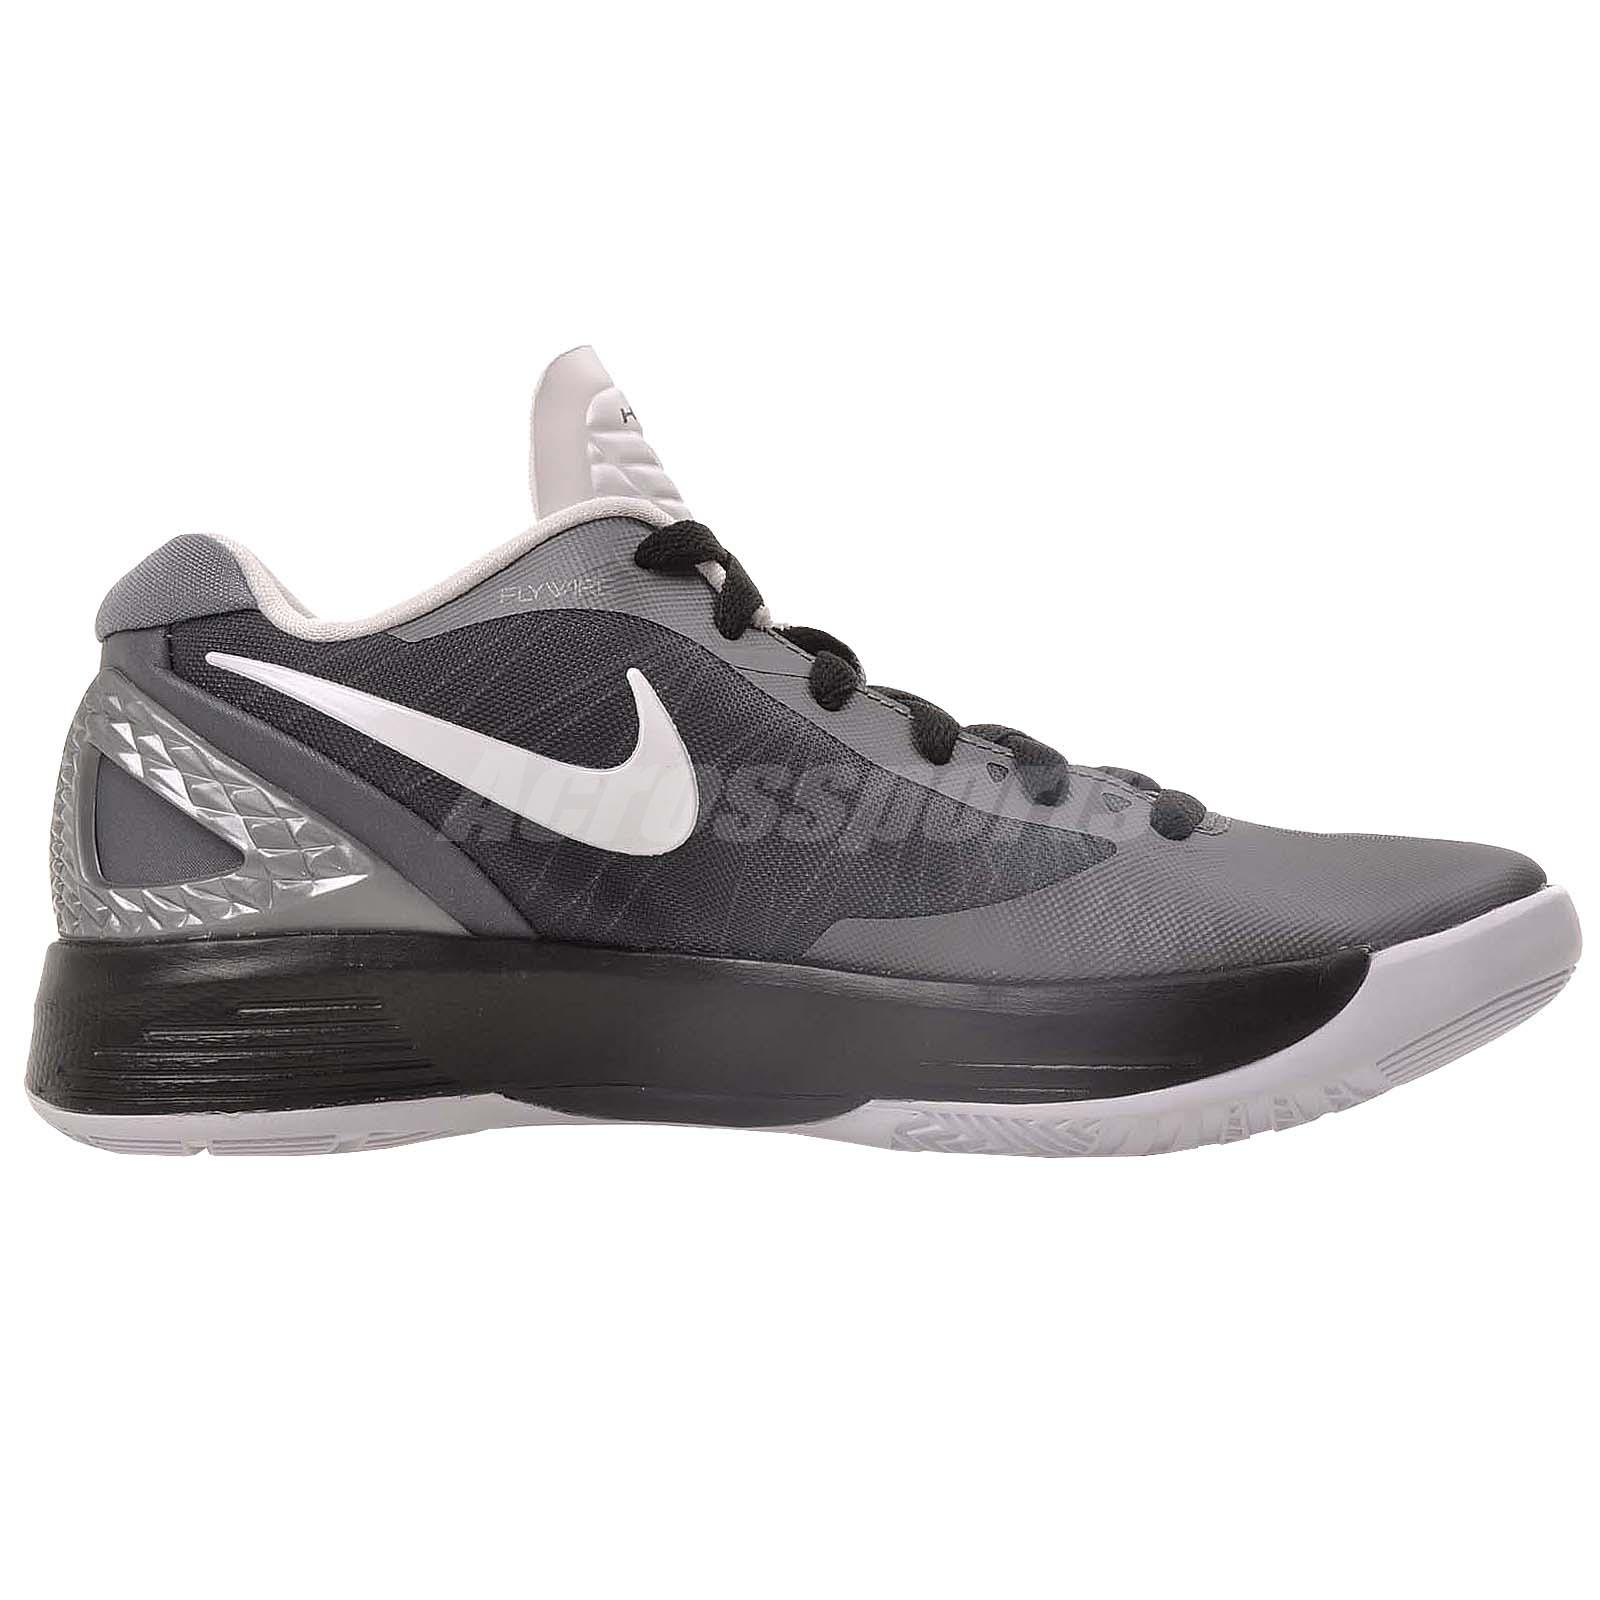 Nike Womens Volleyball Shoes Size